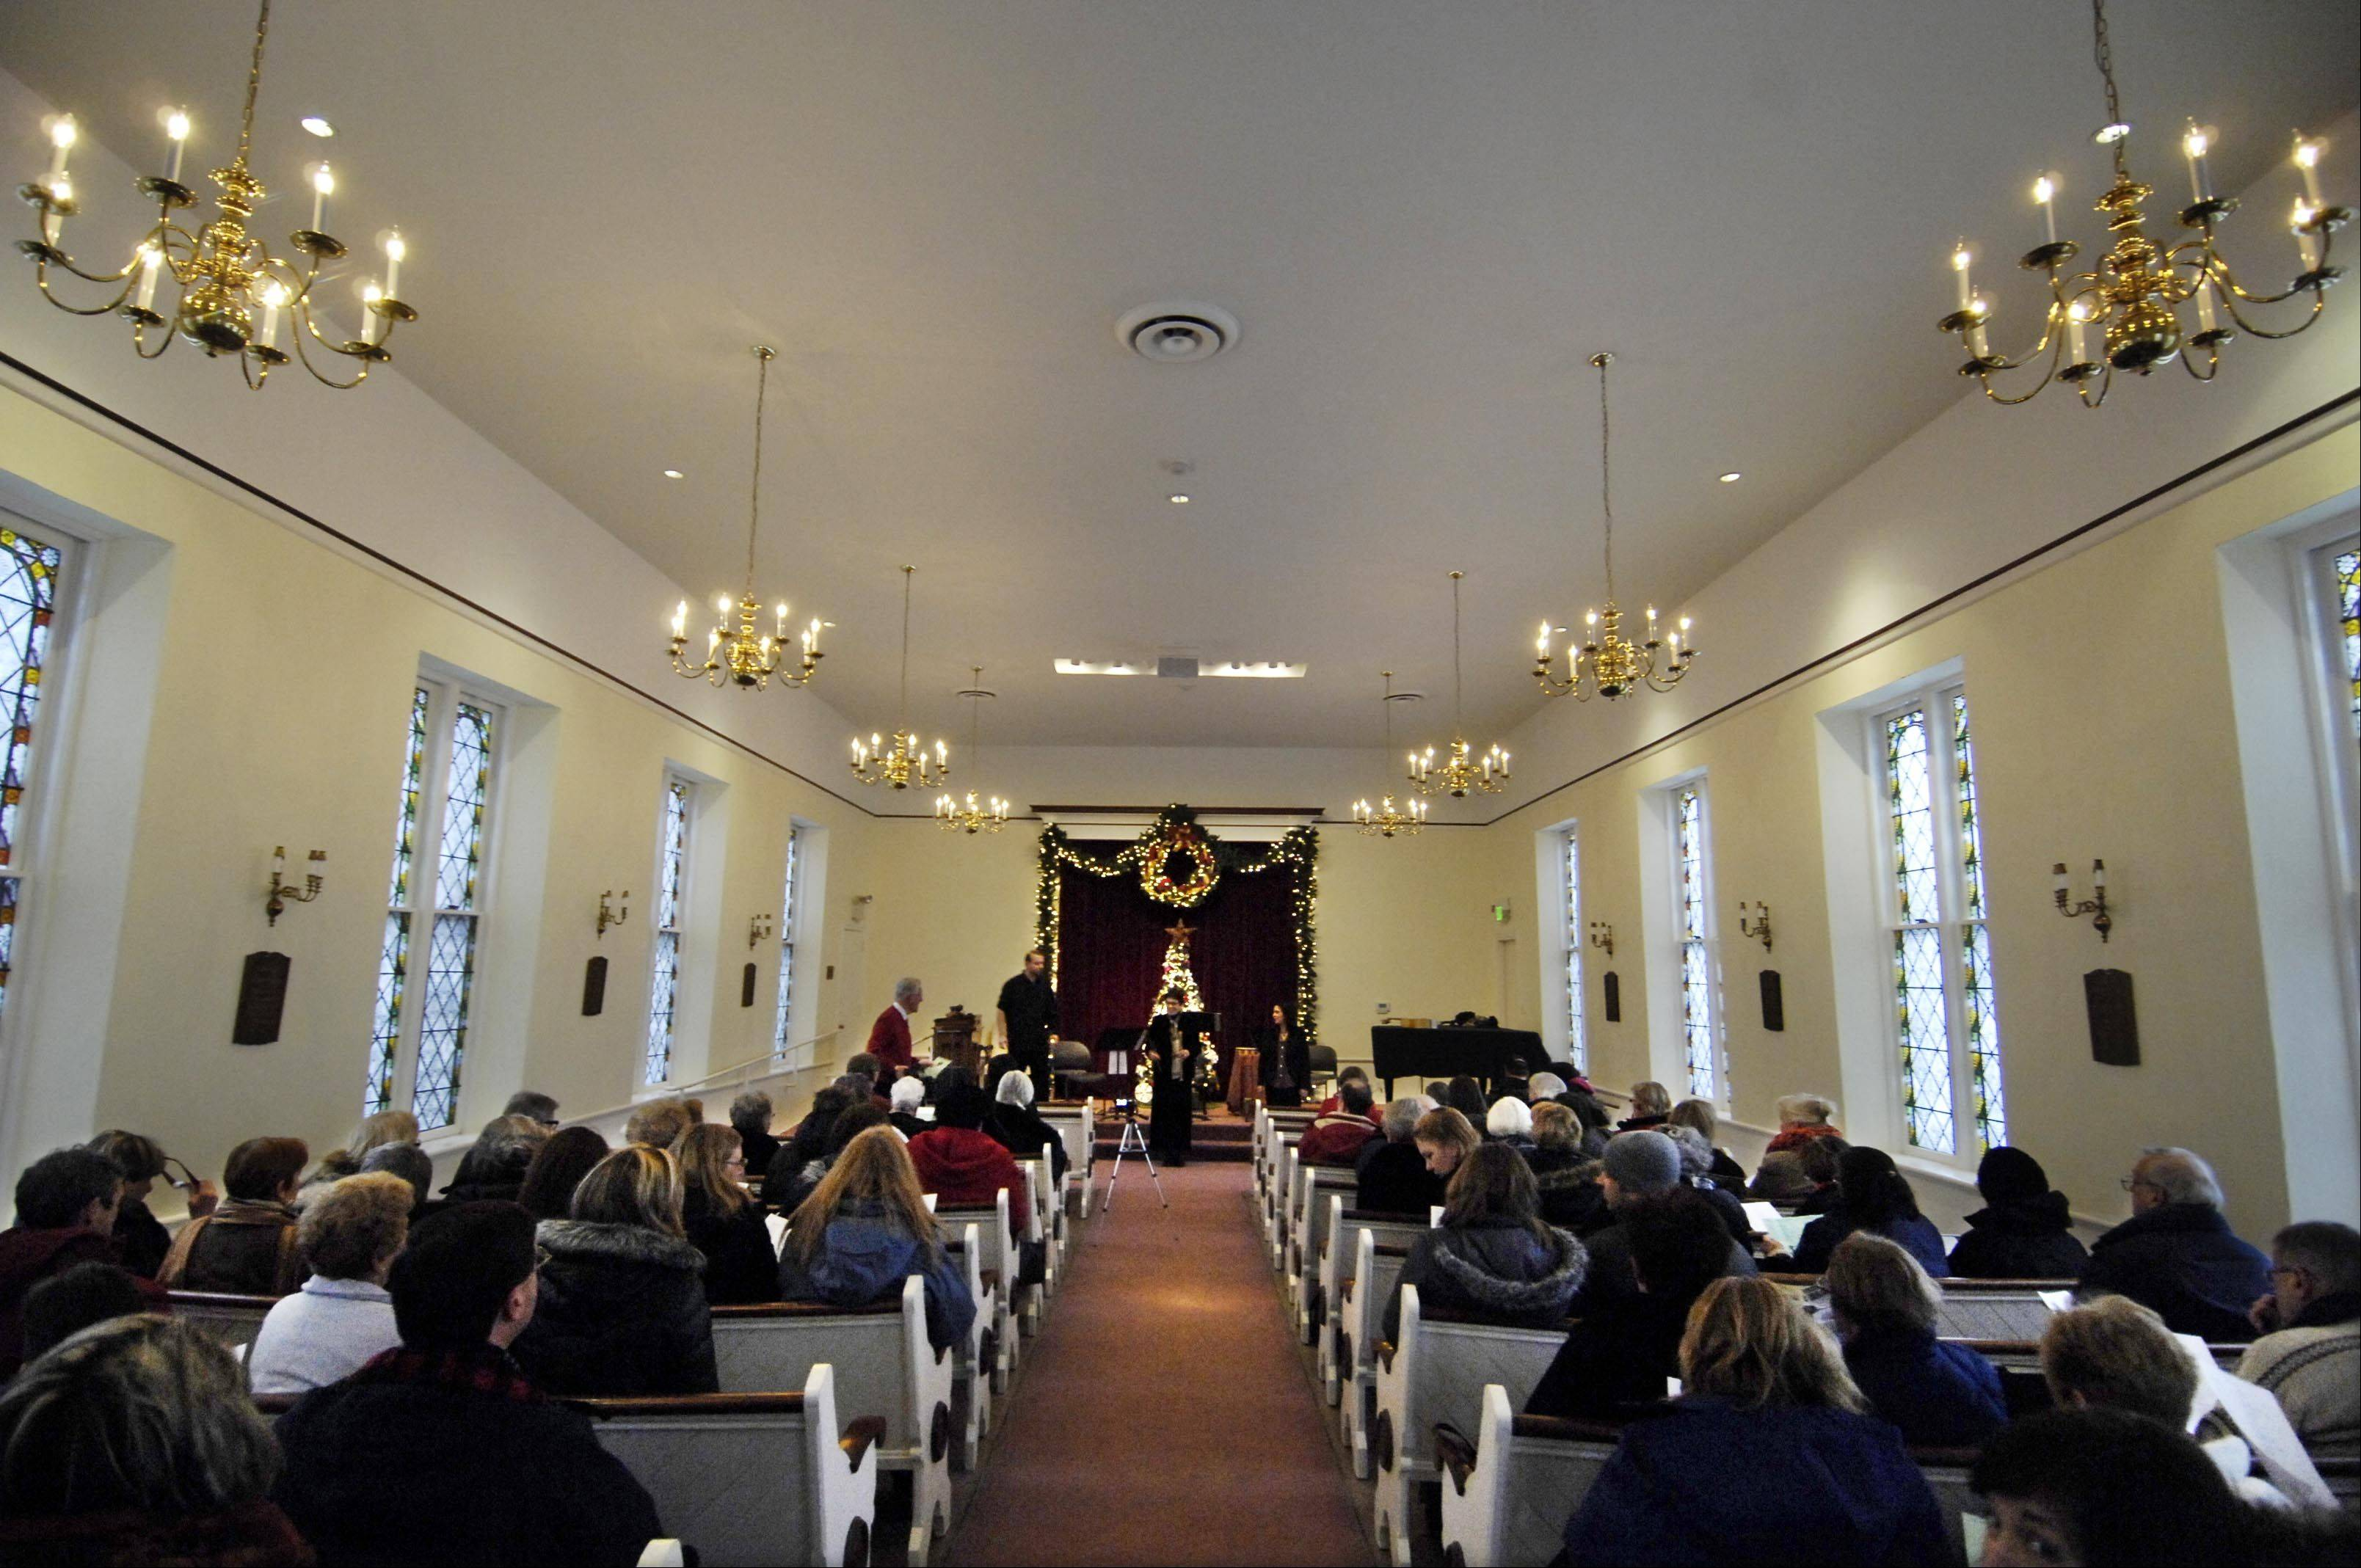 The pews in the oldest church in Geneva, the Unitarian Universalist Society of Geneva, were salvaged from a church that burned in the 1871 Chicago fire. The building was originally built in 1843. Visitors listened to a performance of Renaissance and Baroque music by EnsAmble Ad-Hoc on Sunday during the city's Steeple Walk.